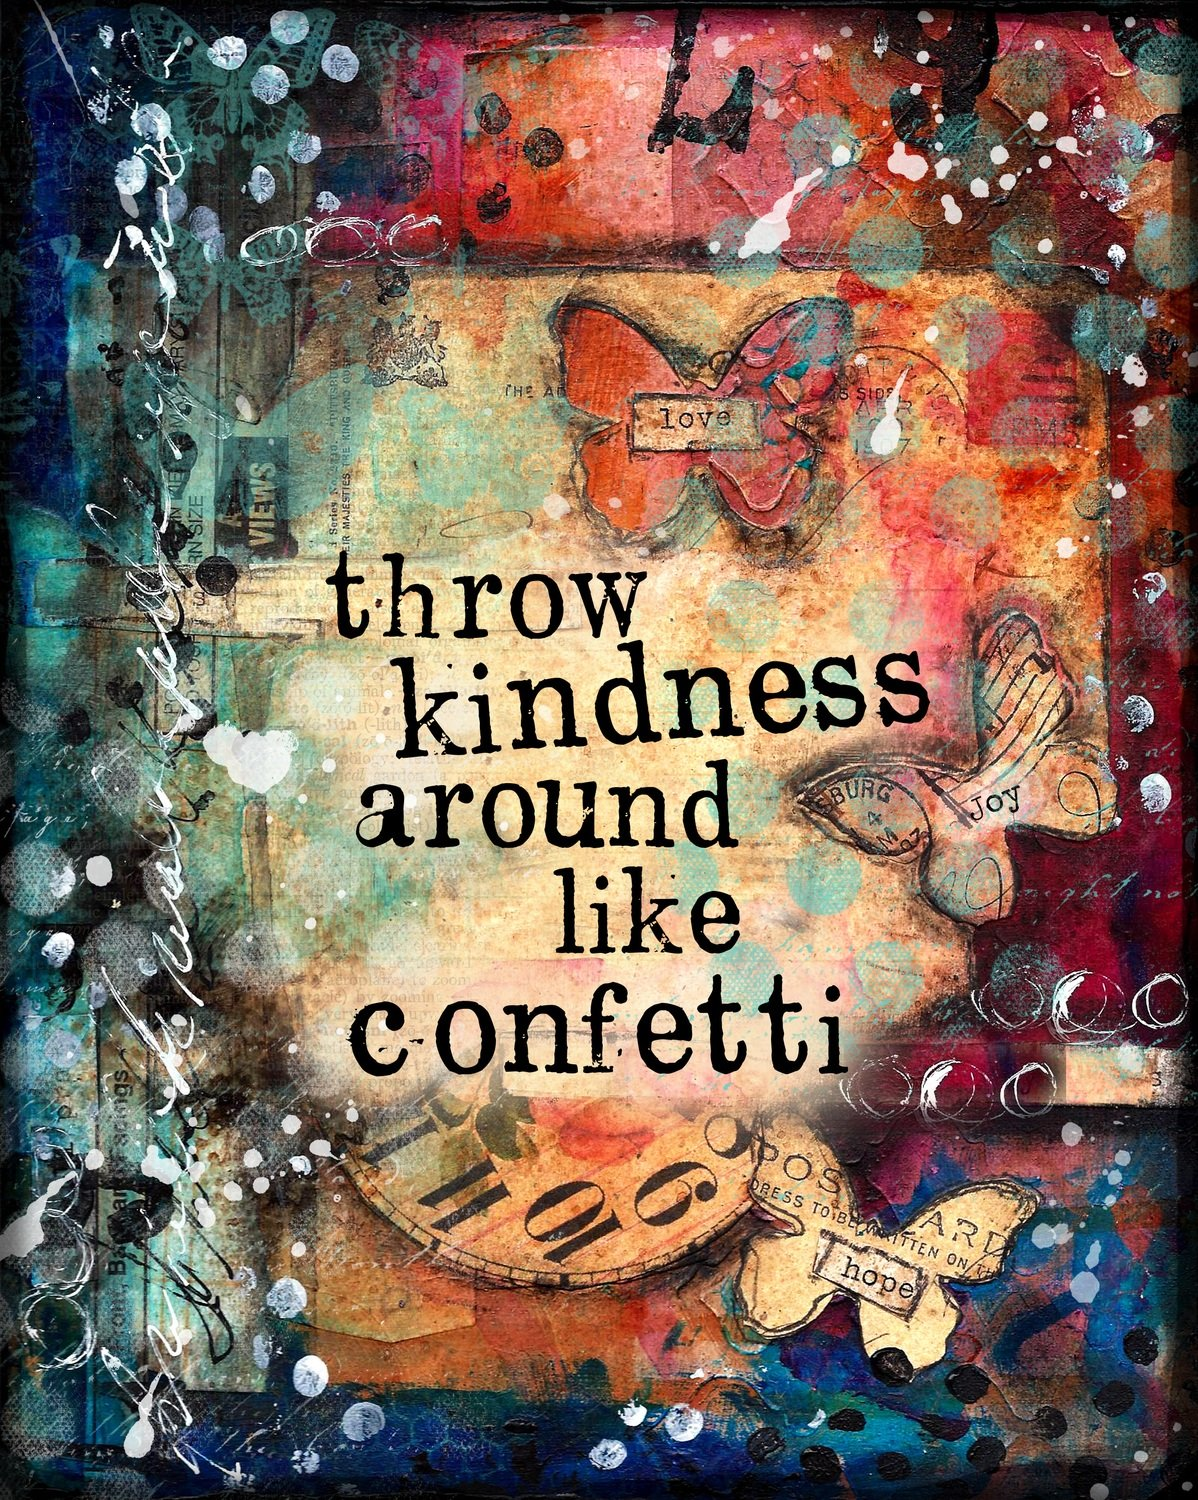 Throw kindness around like confetti print of the original on wood